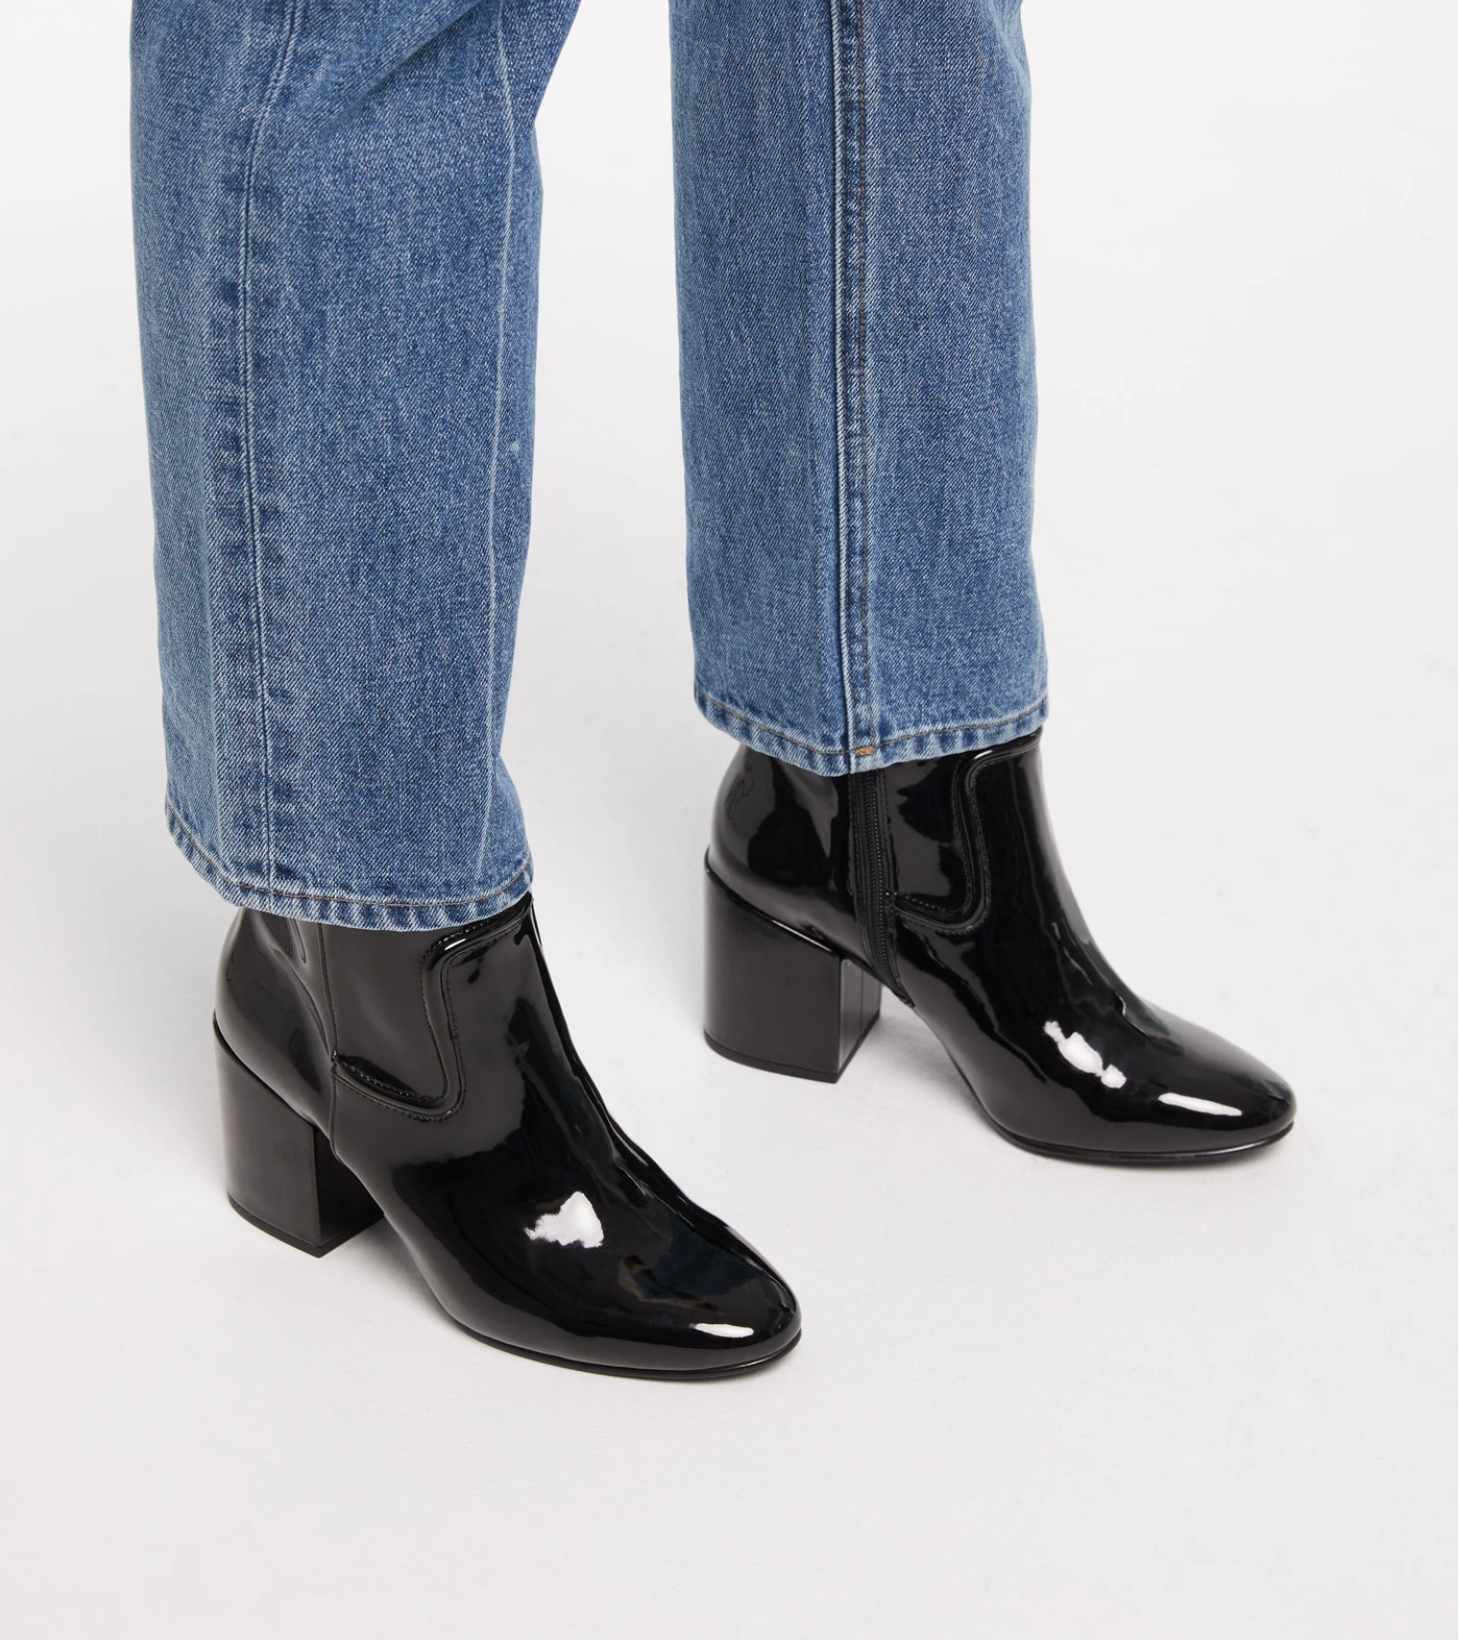 Boon Boot in Black | Matt & Natt